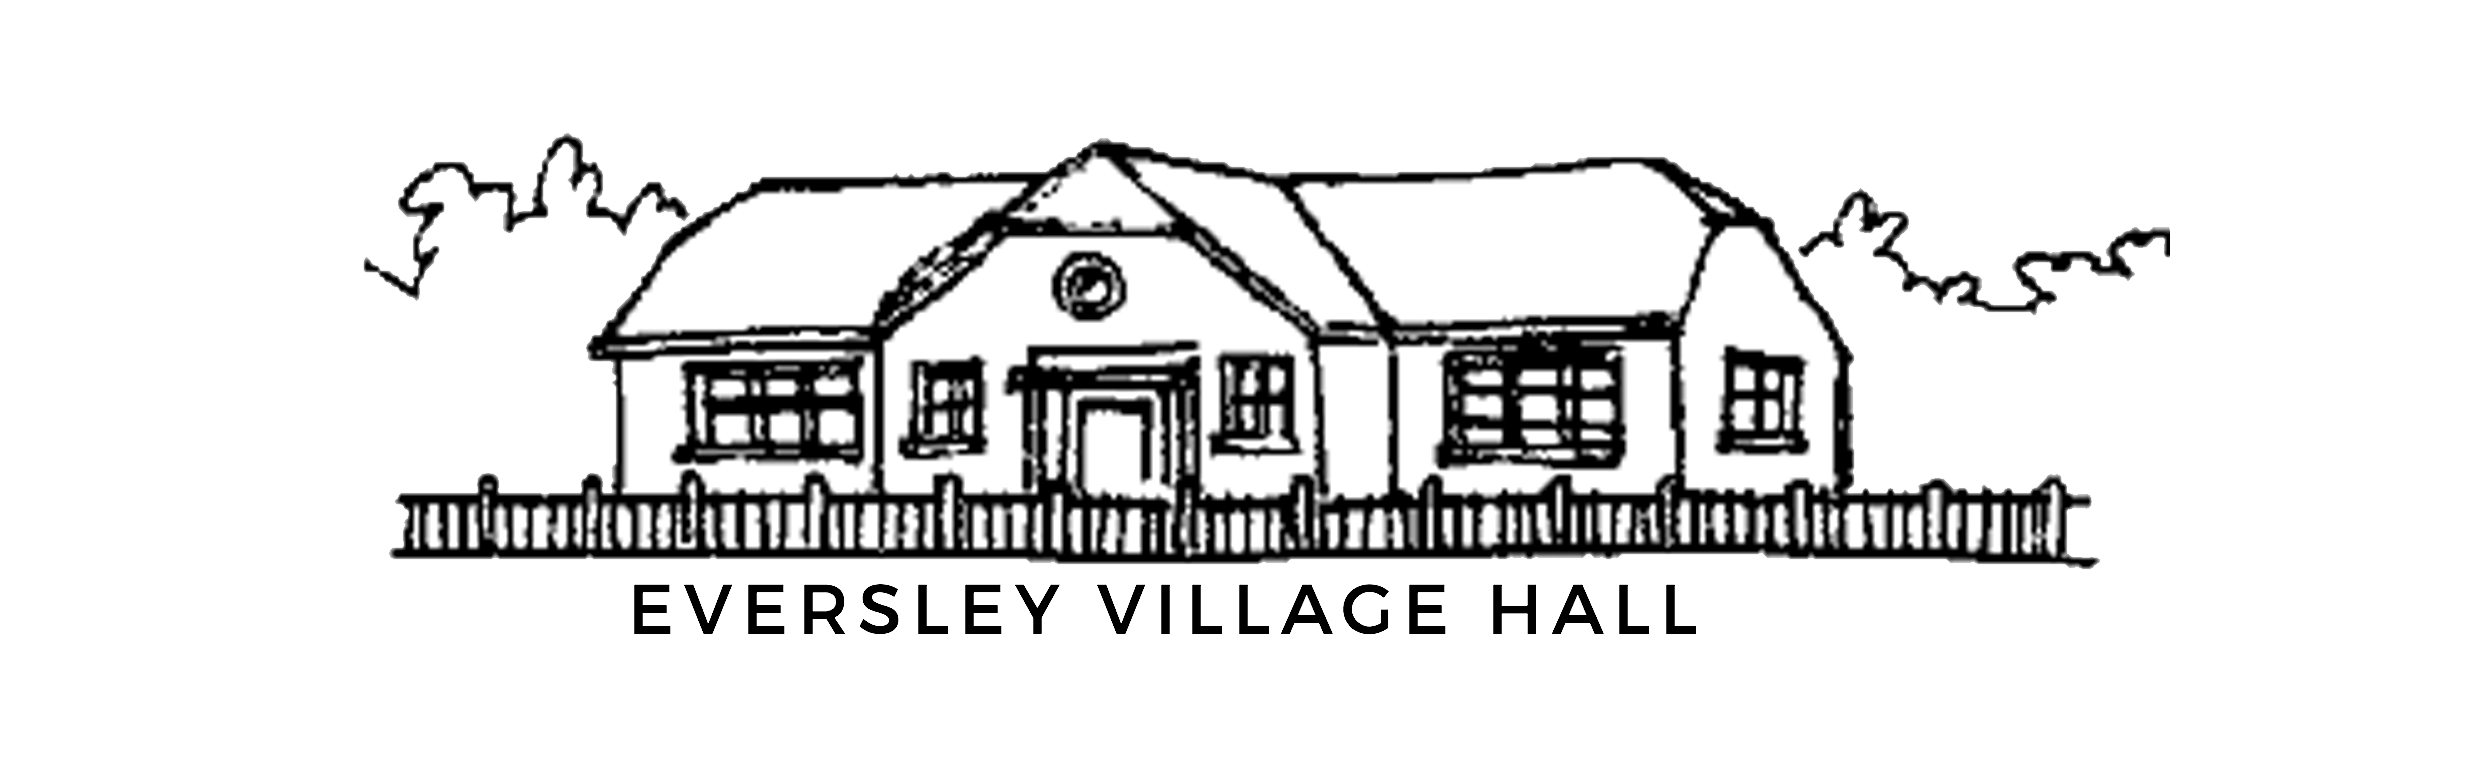 Eversley Village Hall